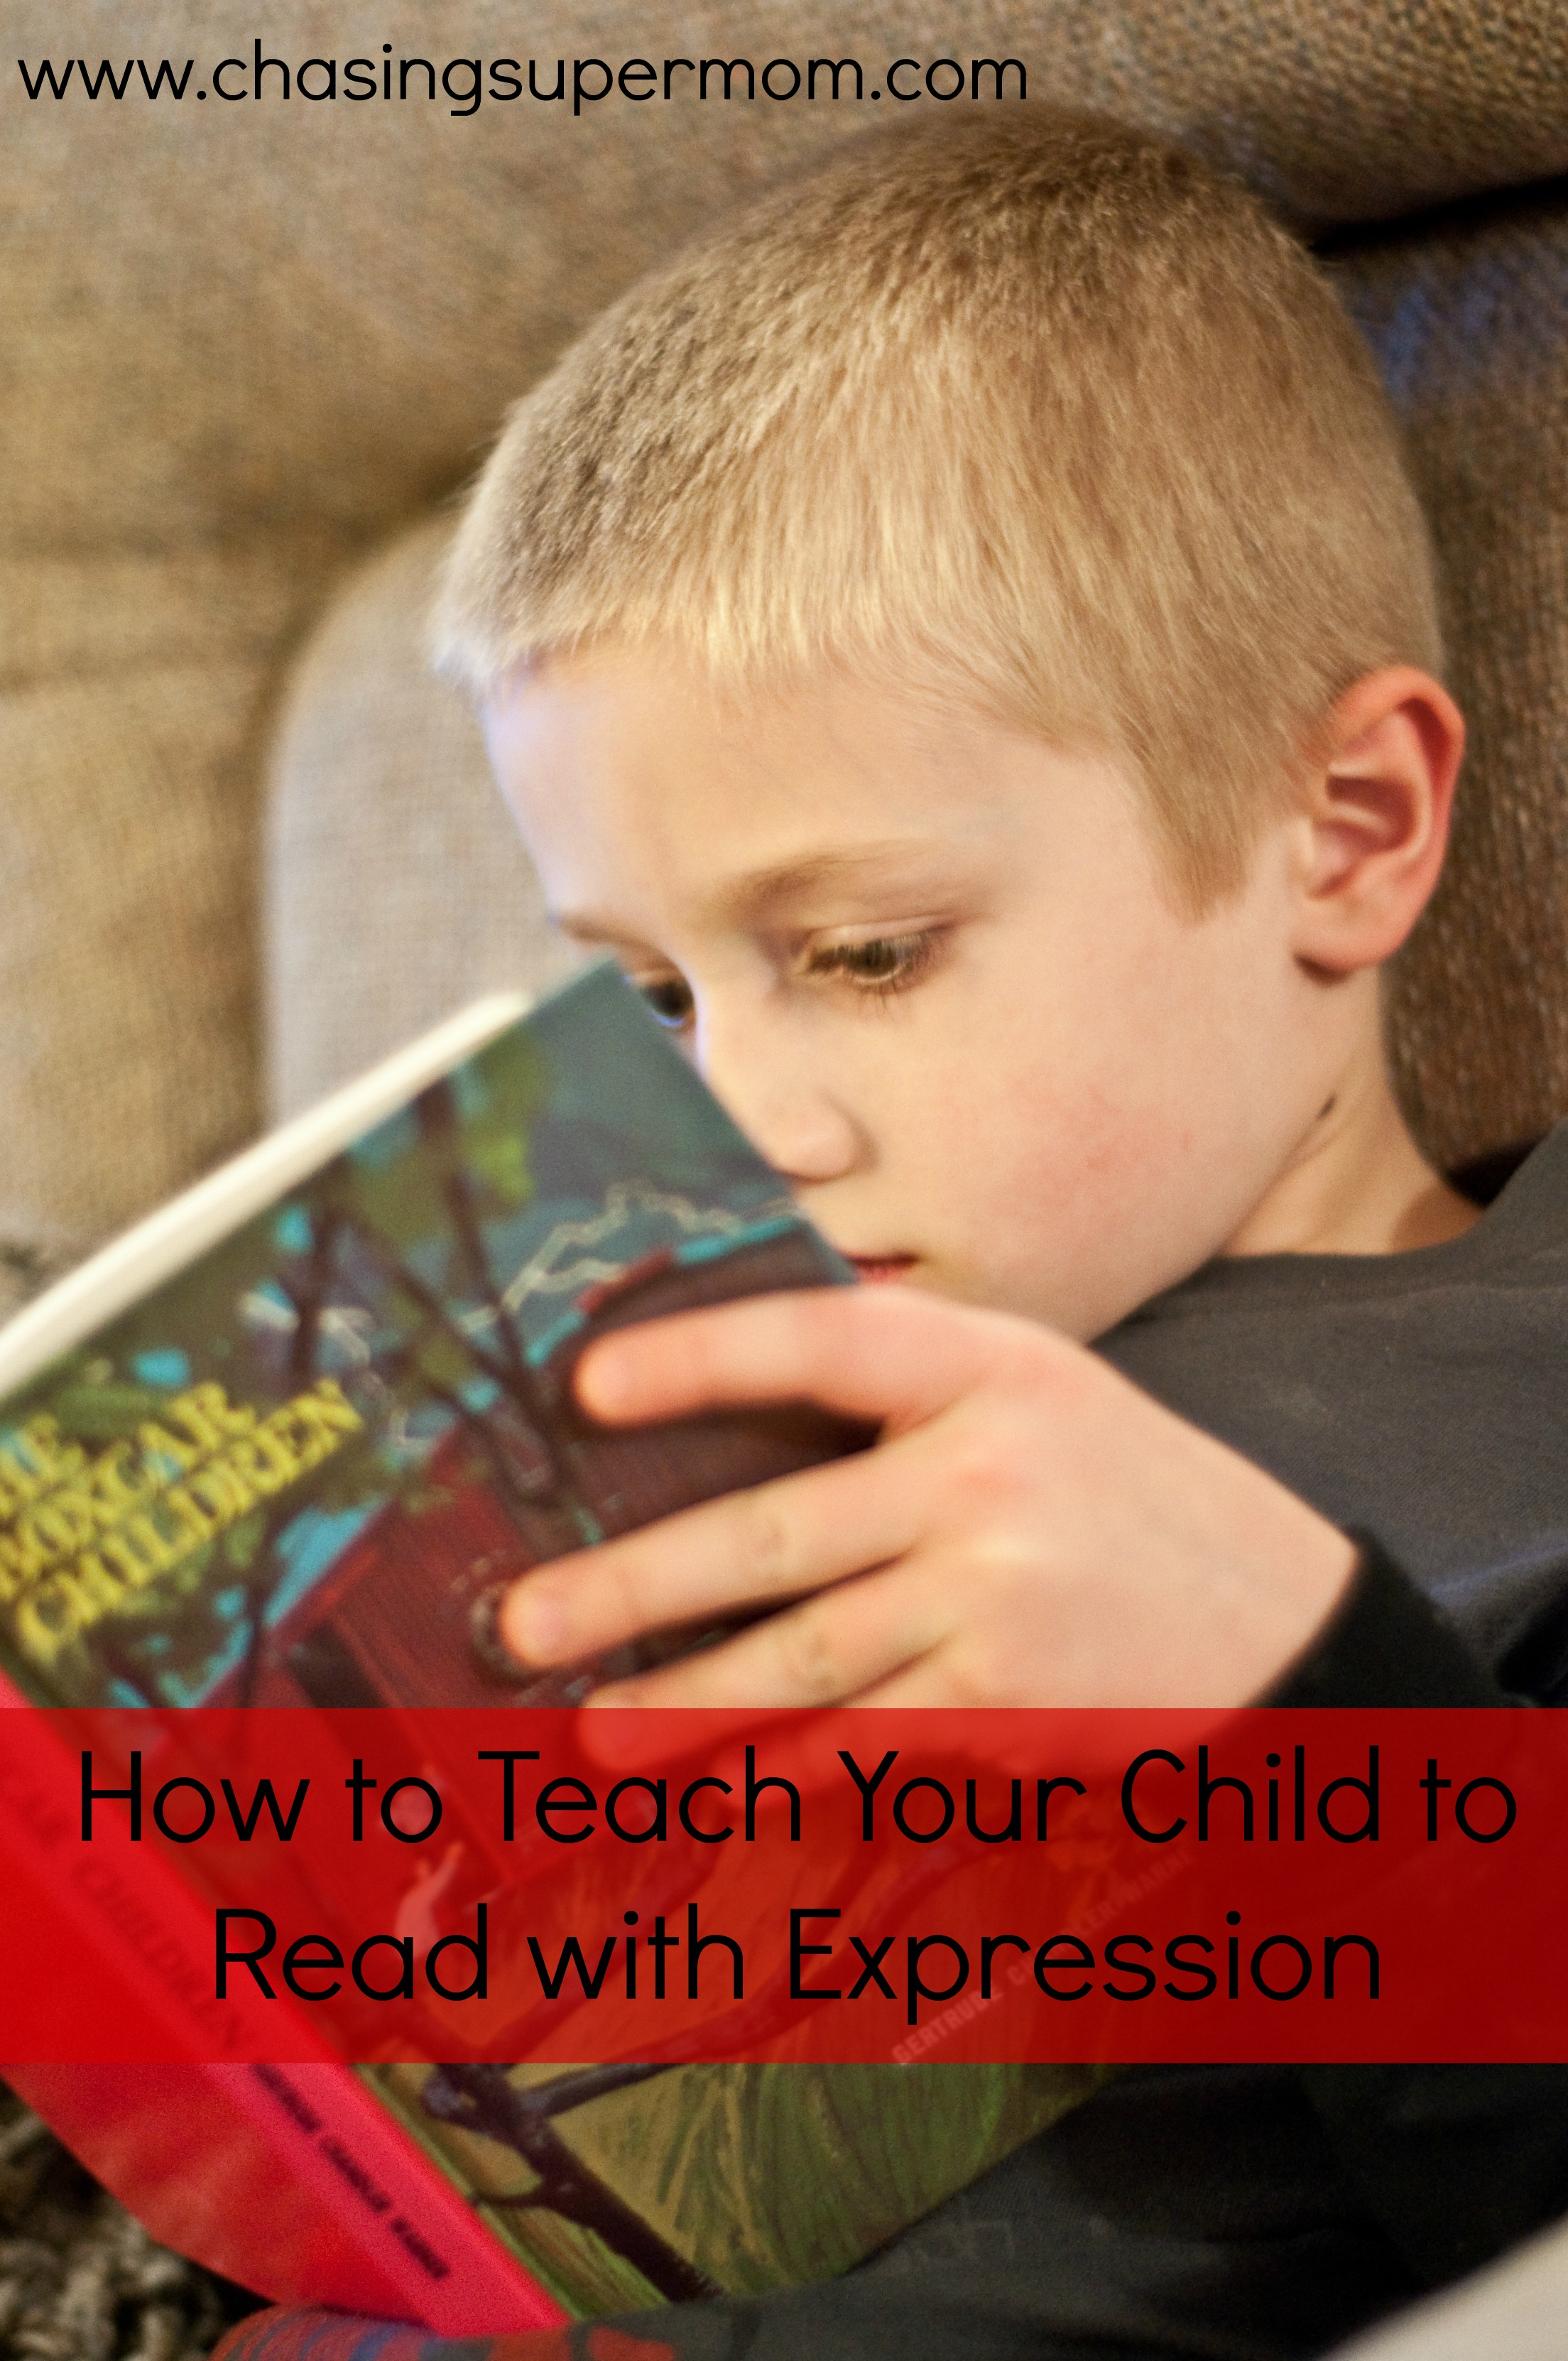 How to Help Your Child Read with Expression